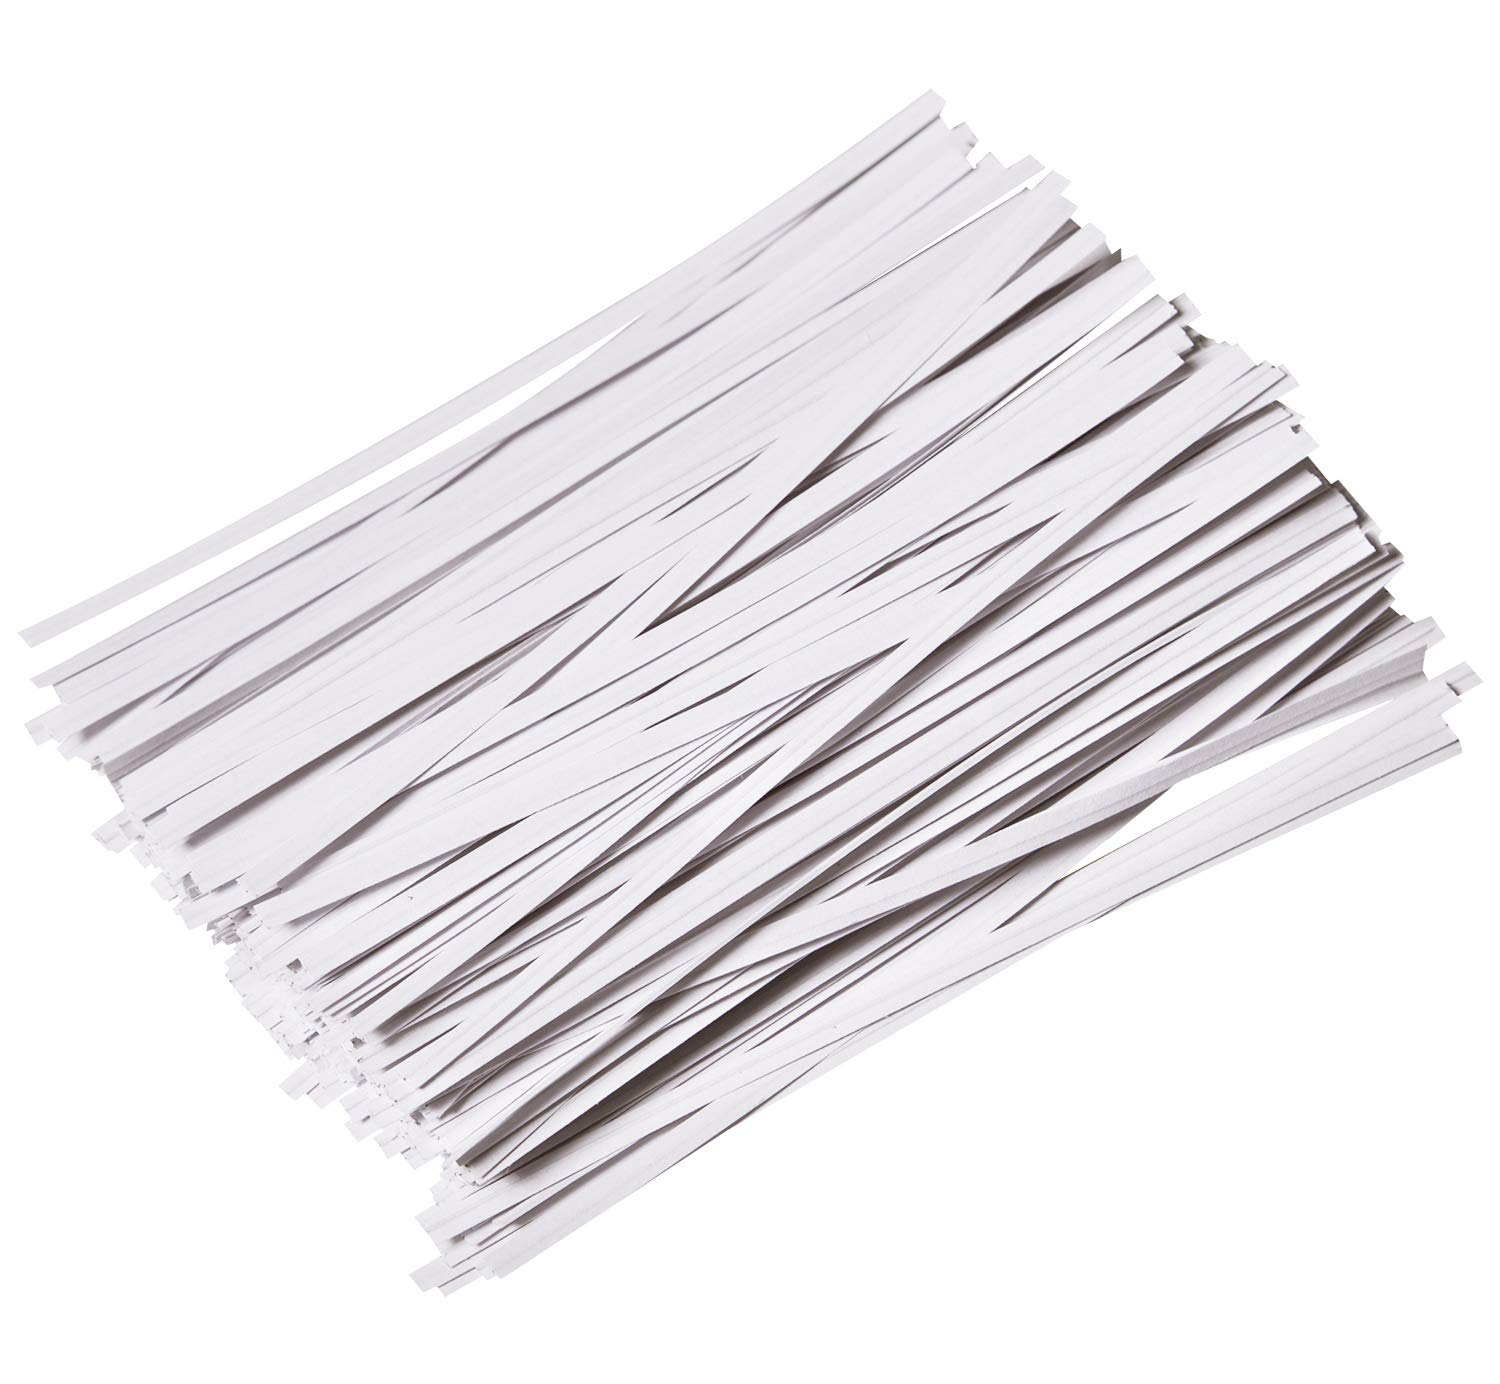 5 Inches Plastic Black Twist Ties For Party Cello Candy Bags Cake Pops 1000 PCS